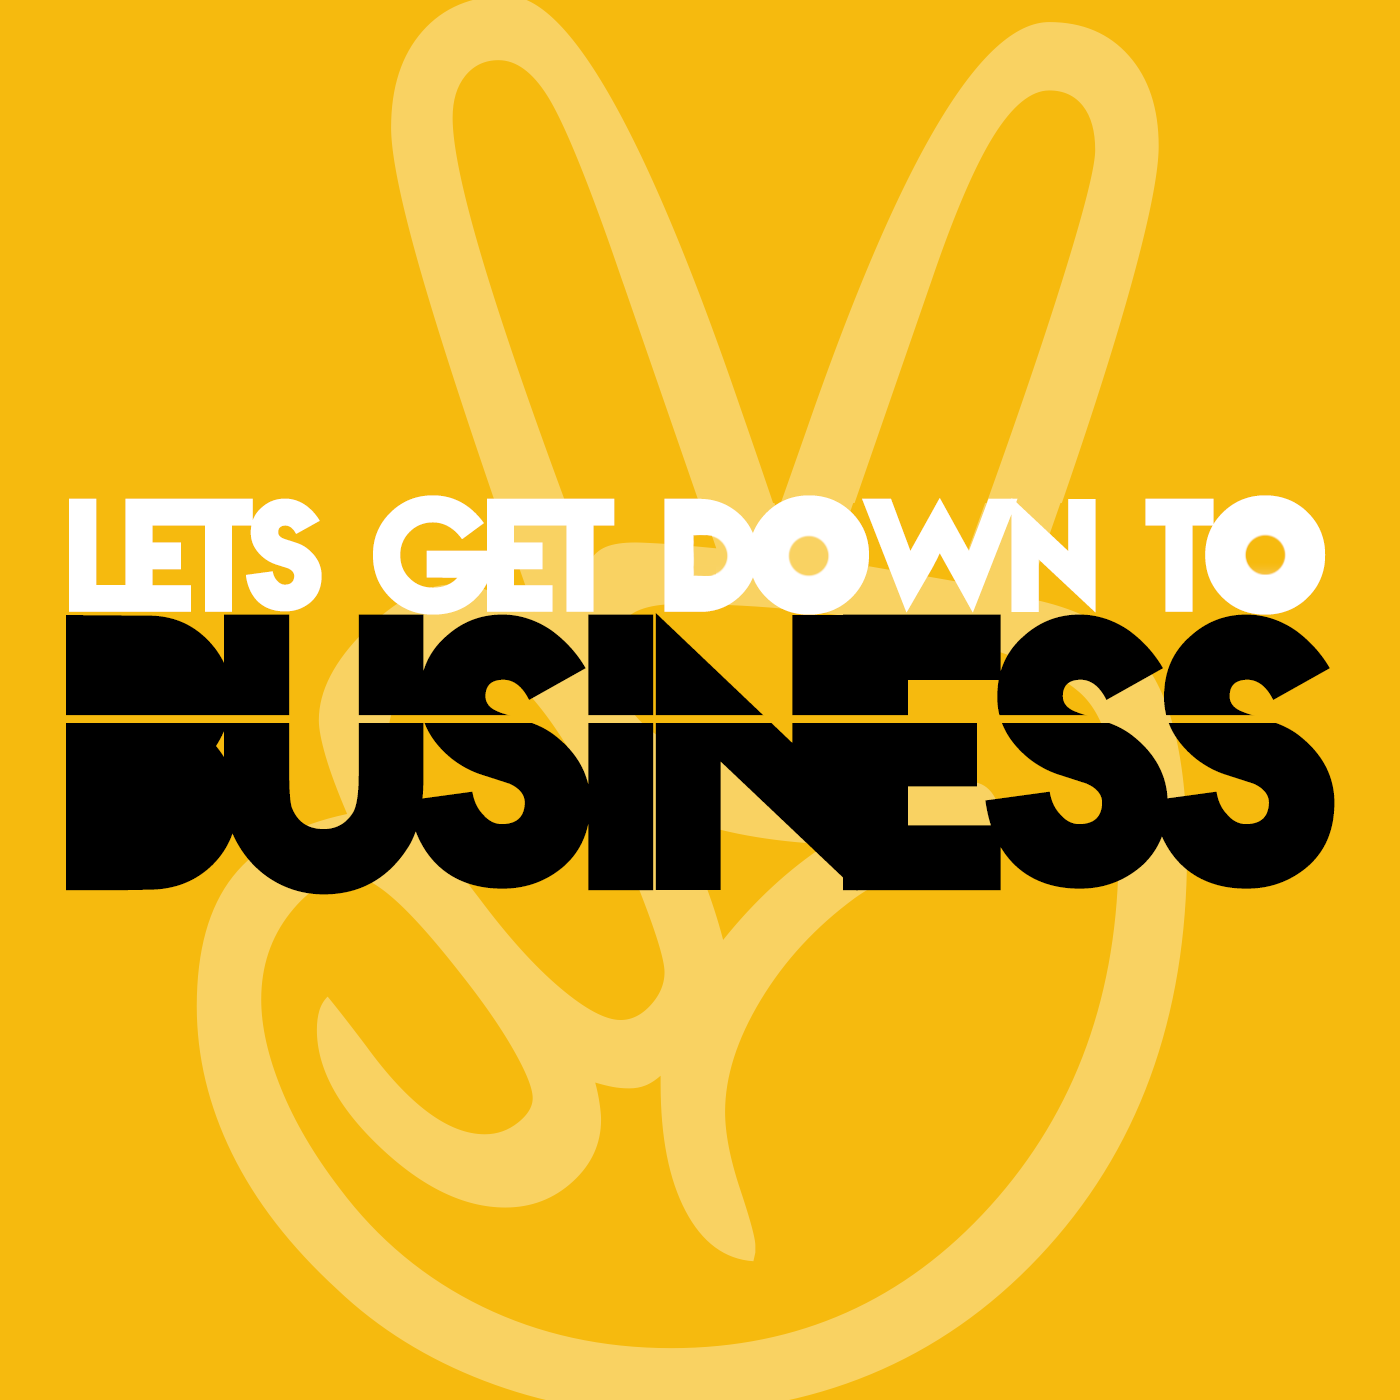 letsgetdowntobusiness